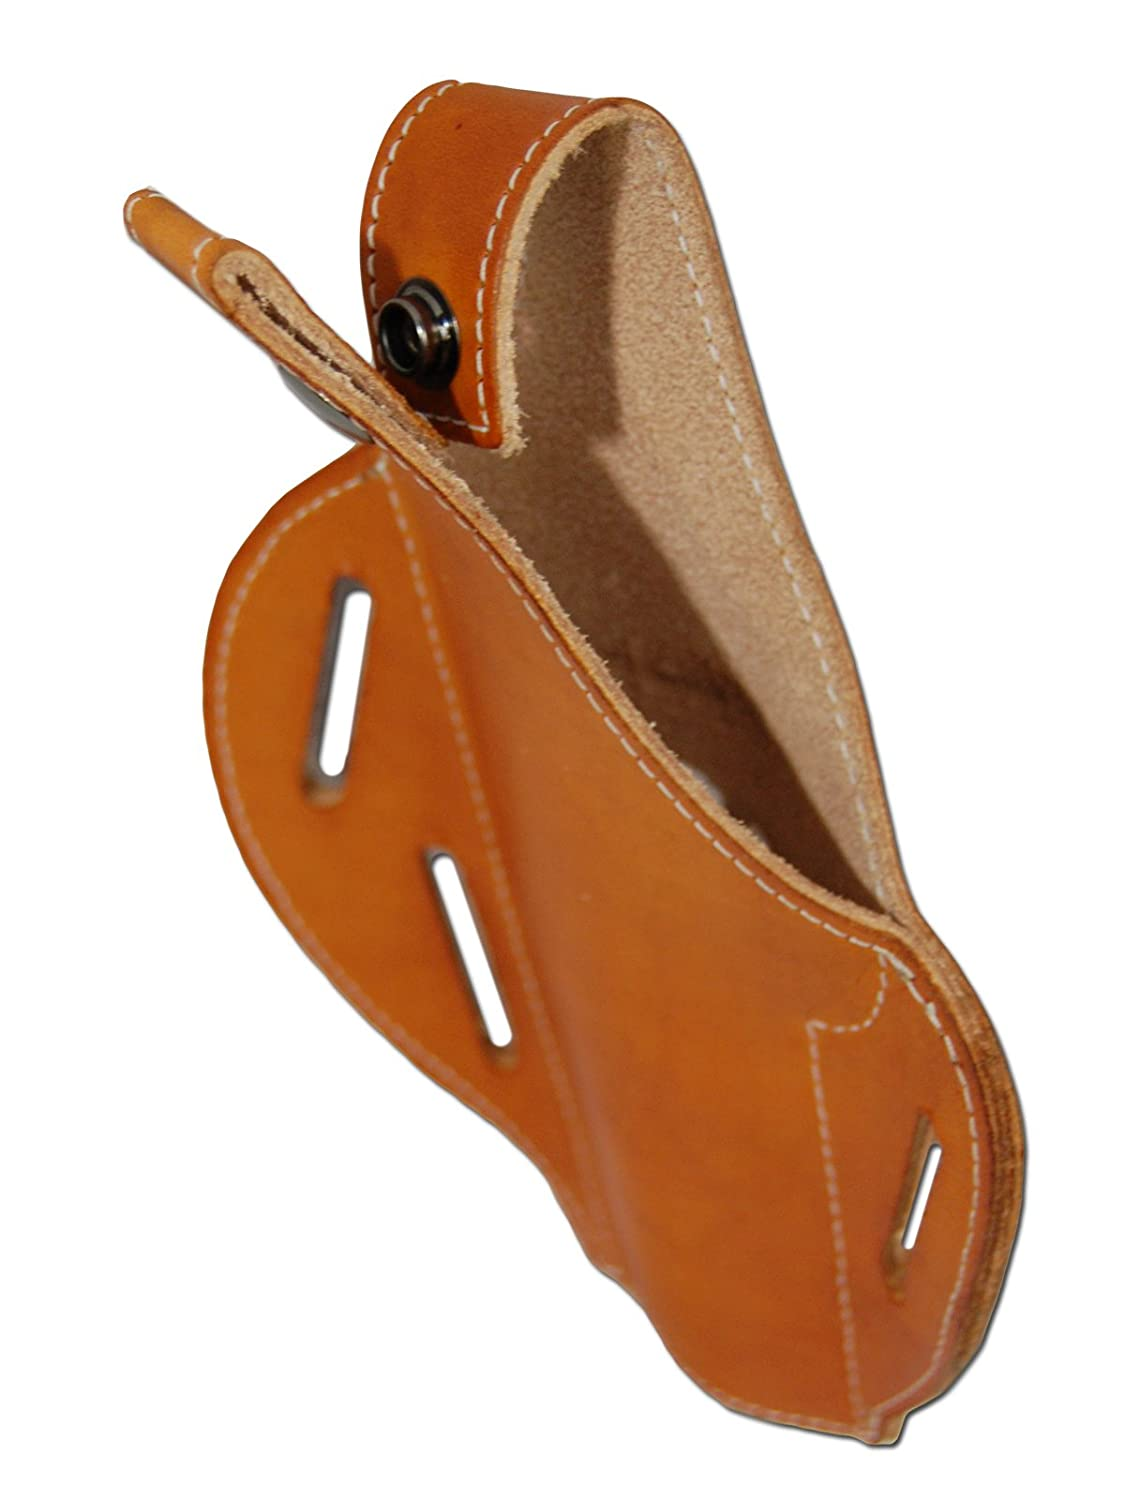 Details about  /New Tan Leather Pancake Holster Dbl Mag Pouch Springfield Full Size 9mm 40 45